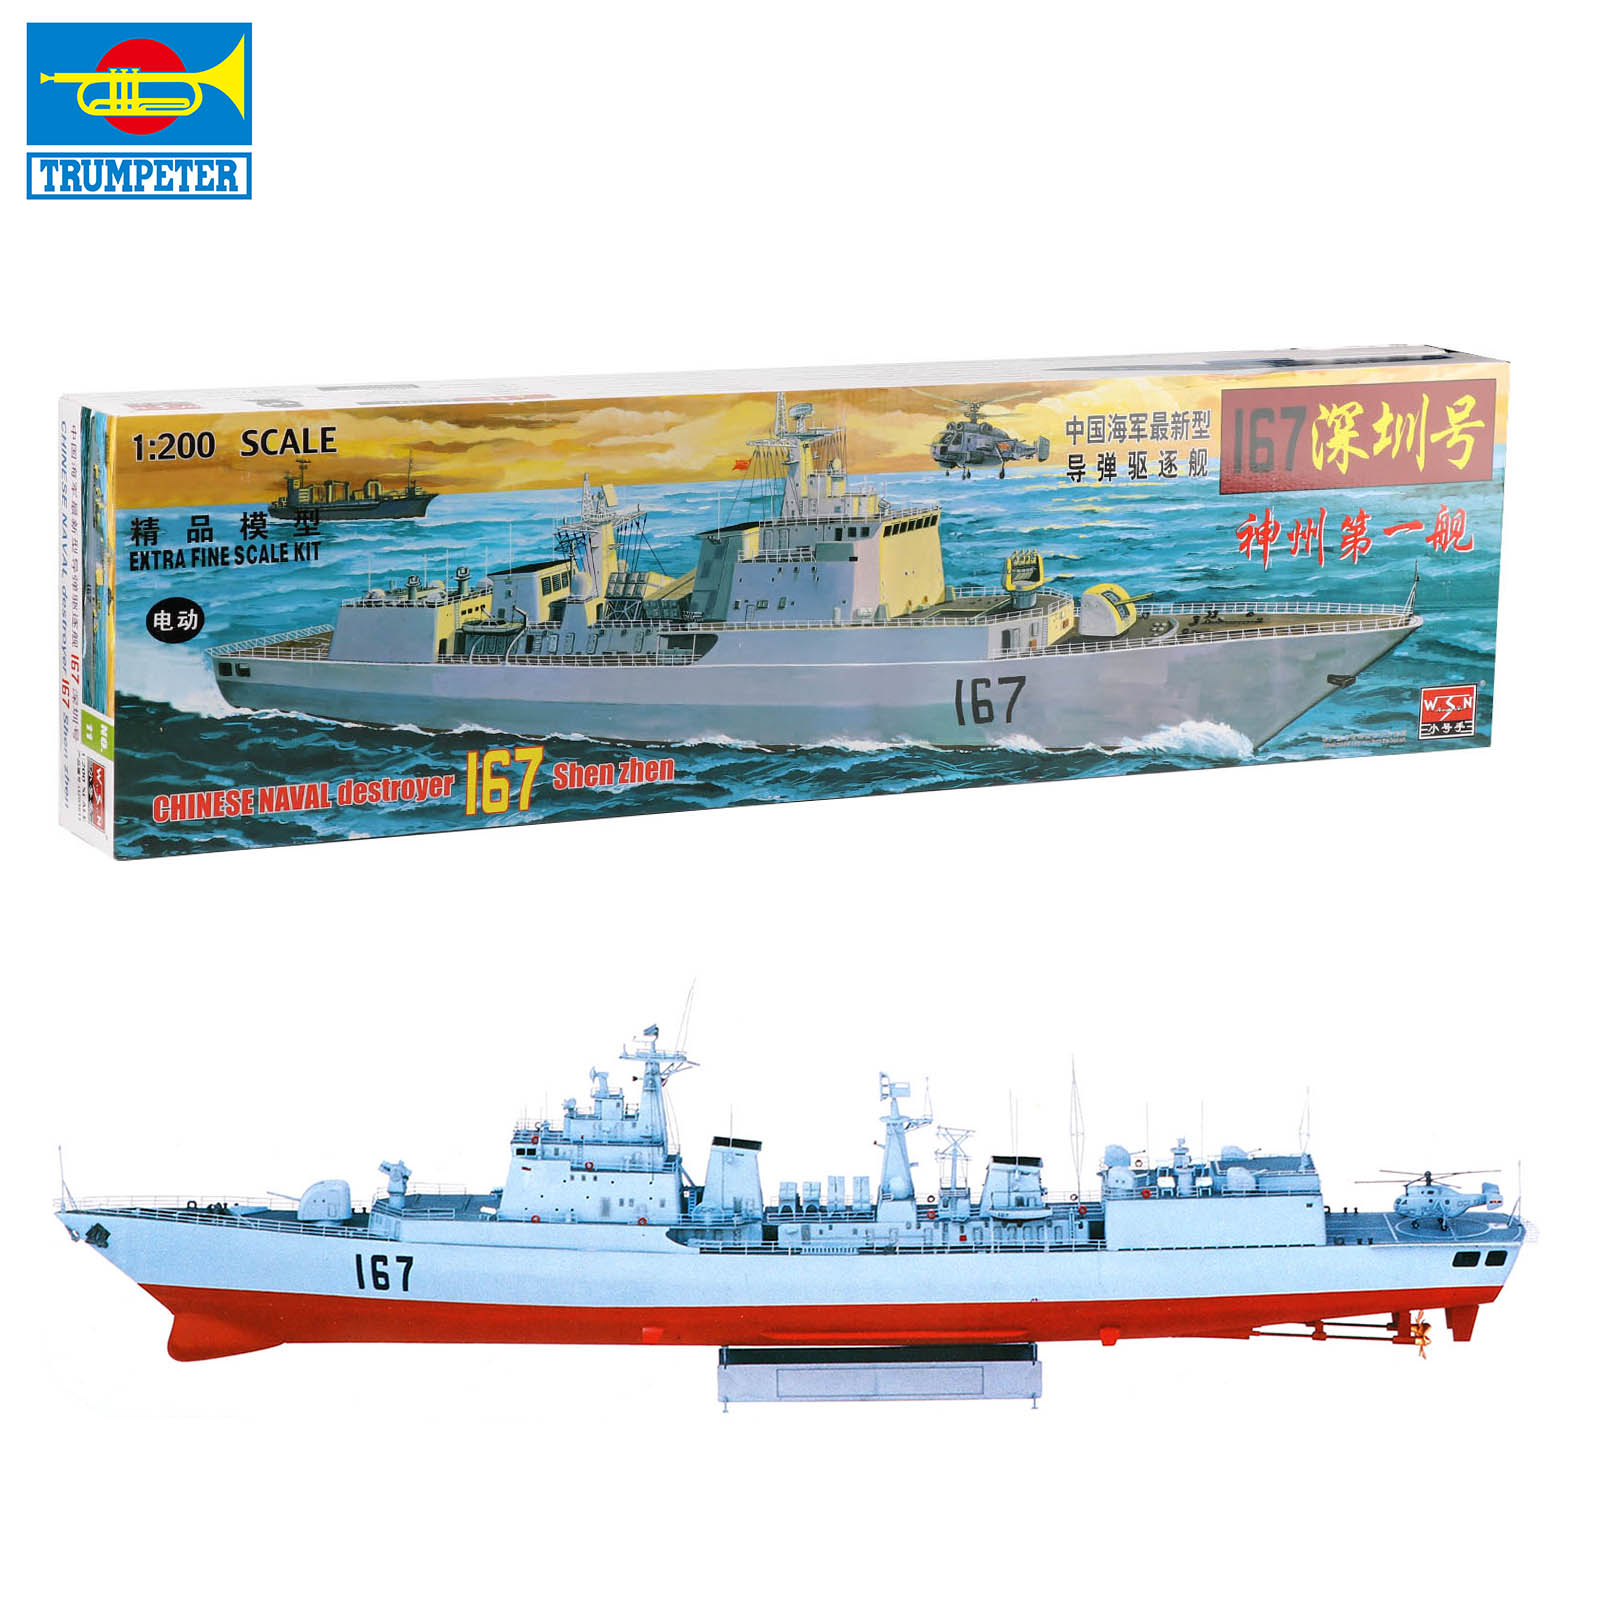 <font><b>Trumpeter</b></font> <font><b>1:200</b></font> Assembled Model Electric Warship Military Chinese Navy Destroyer 167 Shen Zhen Gift Christmas Collection image